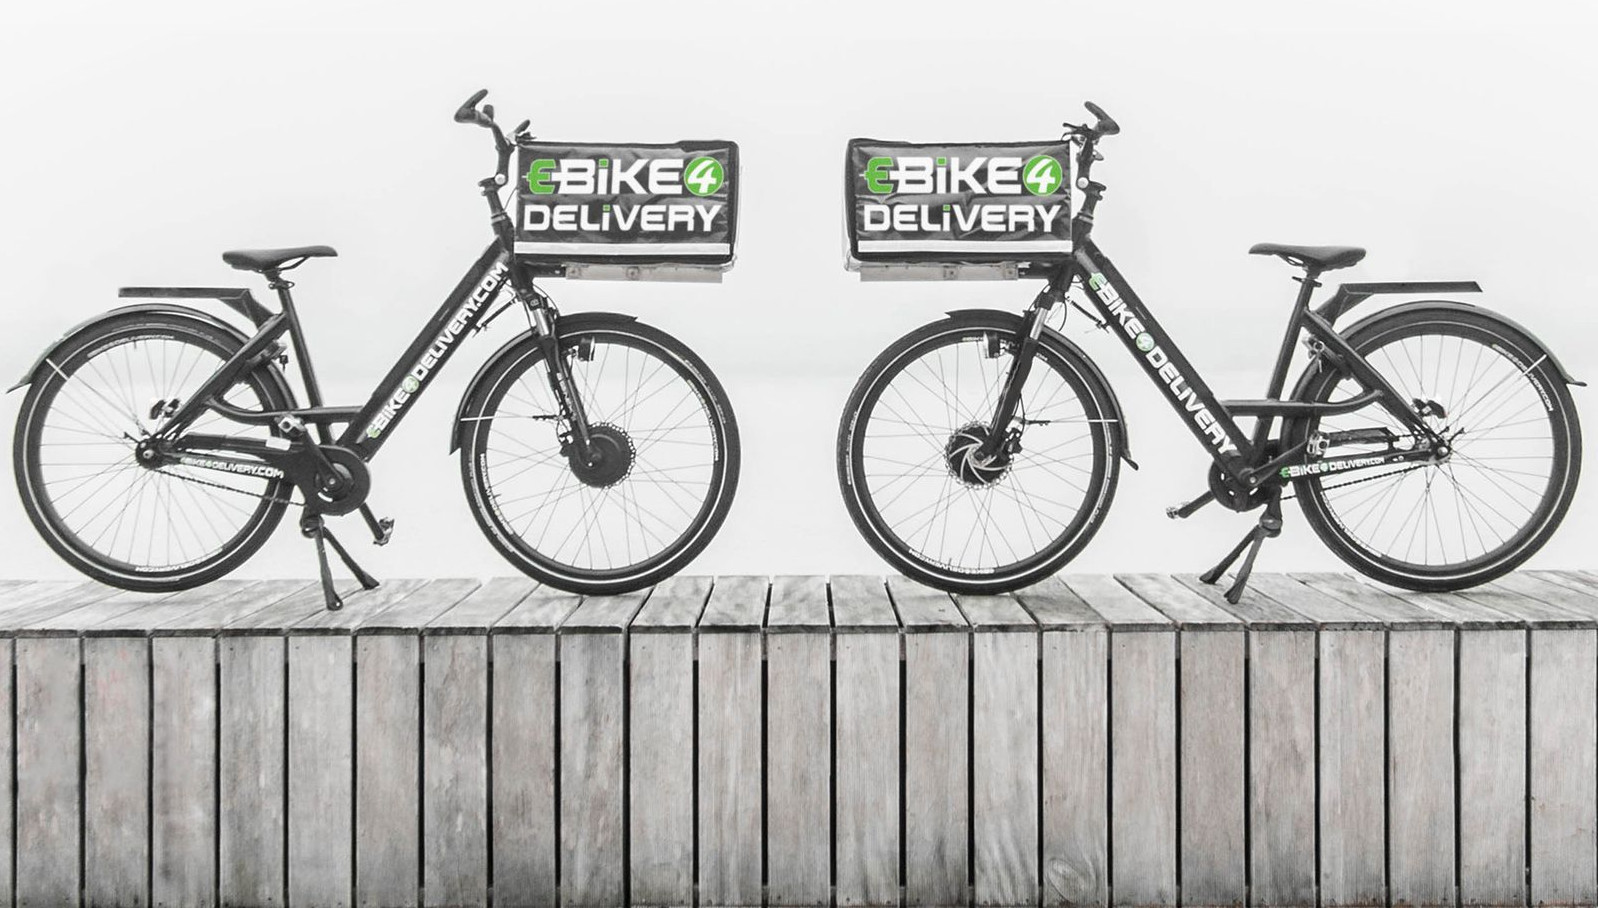 DeliverEbikes